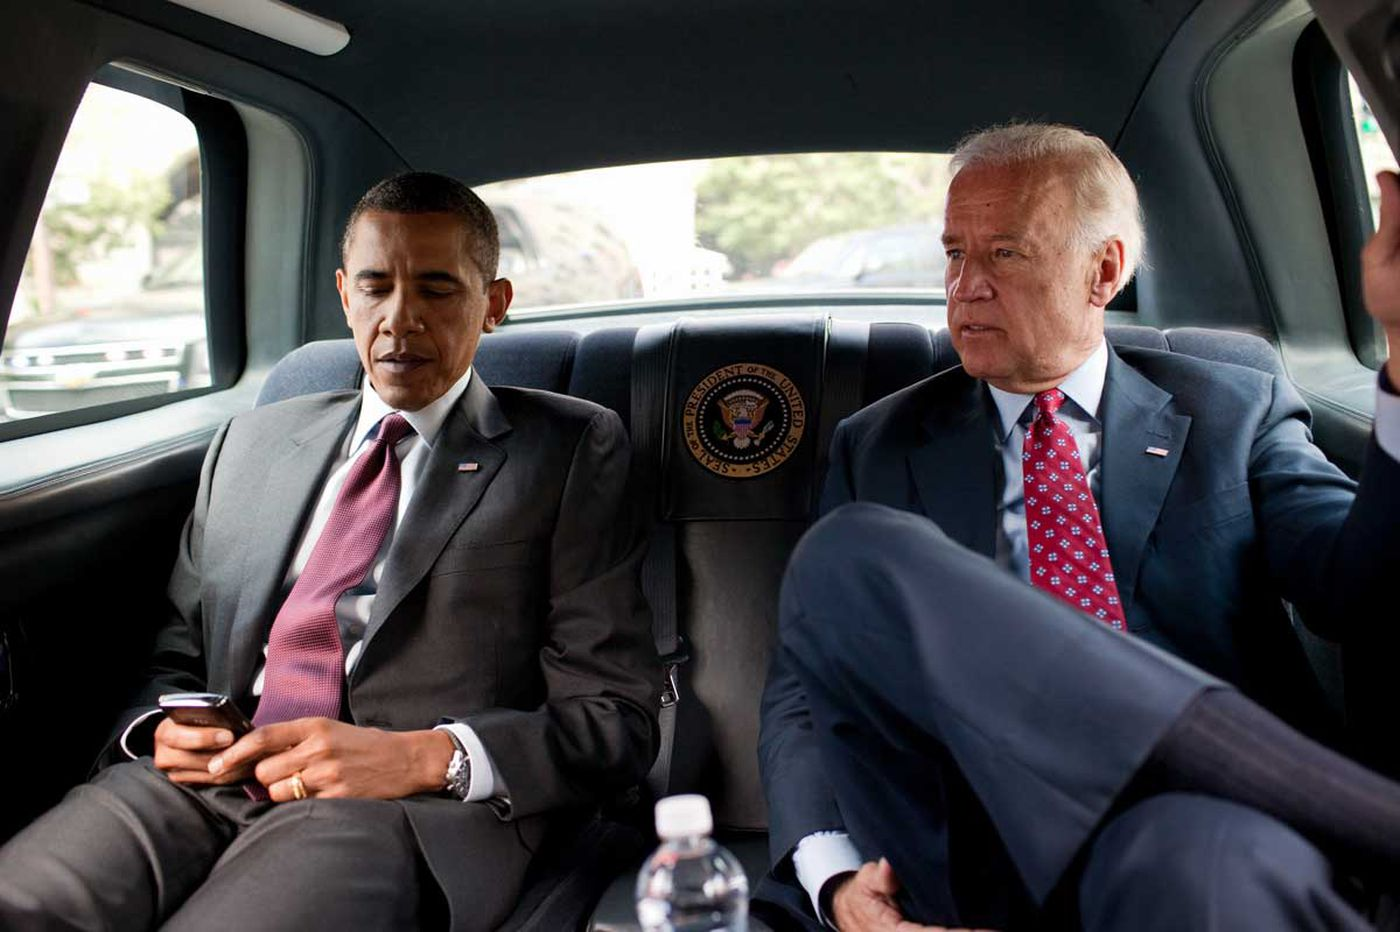 The Obama-Biden bond is among the strongest in White House history